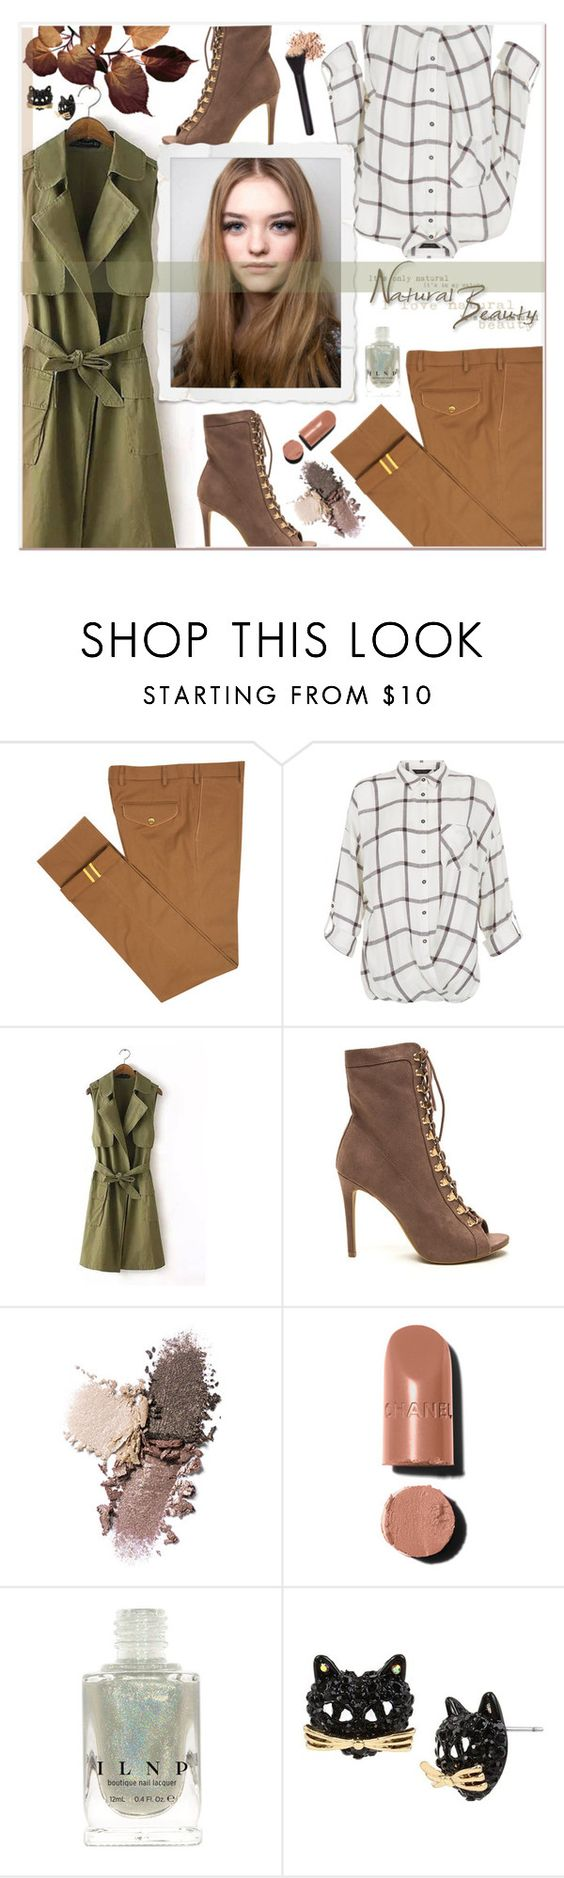 """Fall Streetstyle"" by daizydarling ❤ liked on Polyvore featuring Diverso, New Look, Chanel and Betsey Johnson"